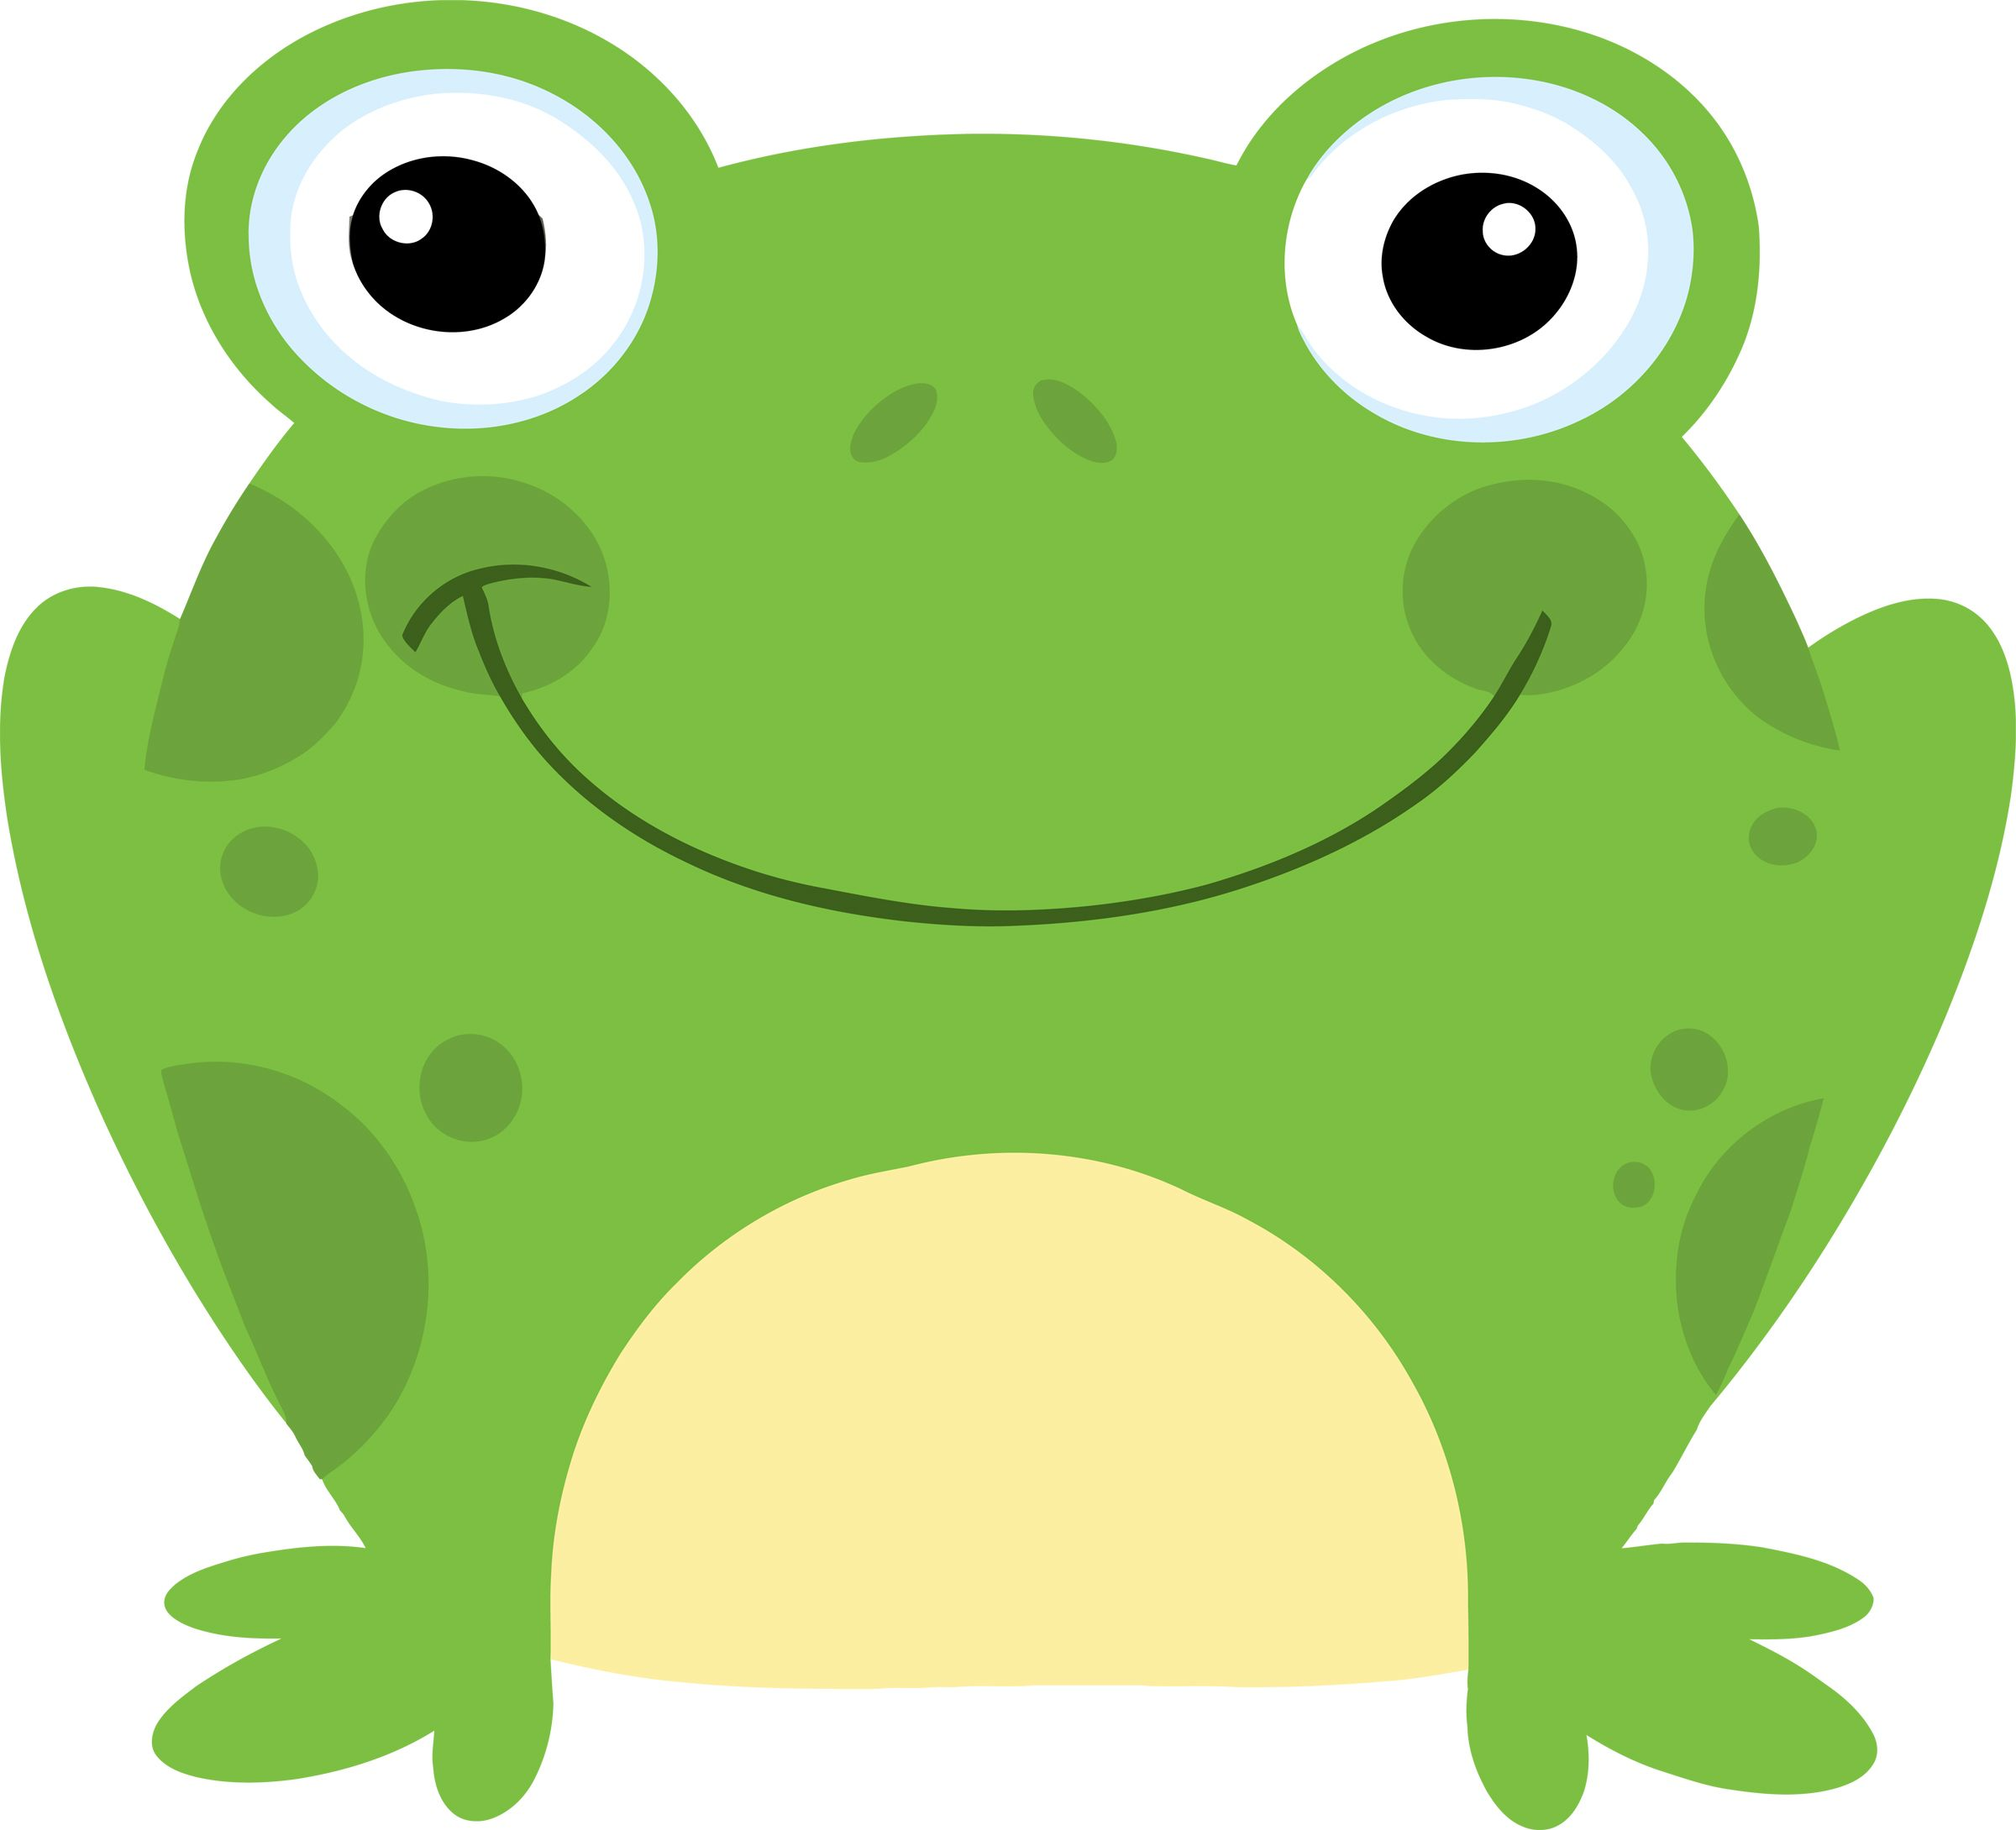 pin by katelyn parker mcgill on crafts pinterest frogs green rh pinterest com clip art frogs pictures clip art frogs free